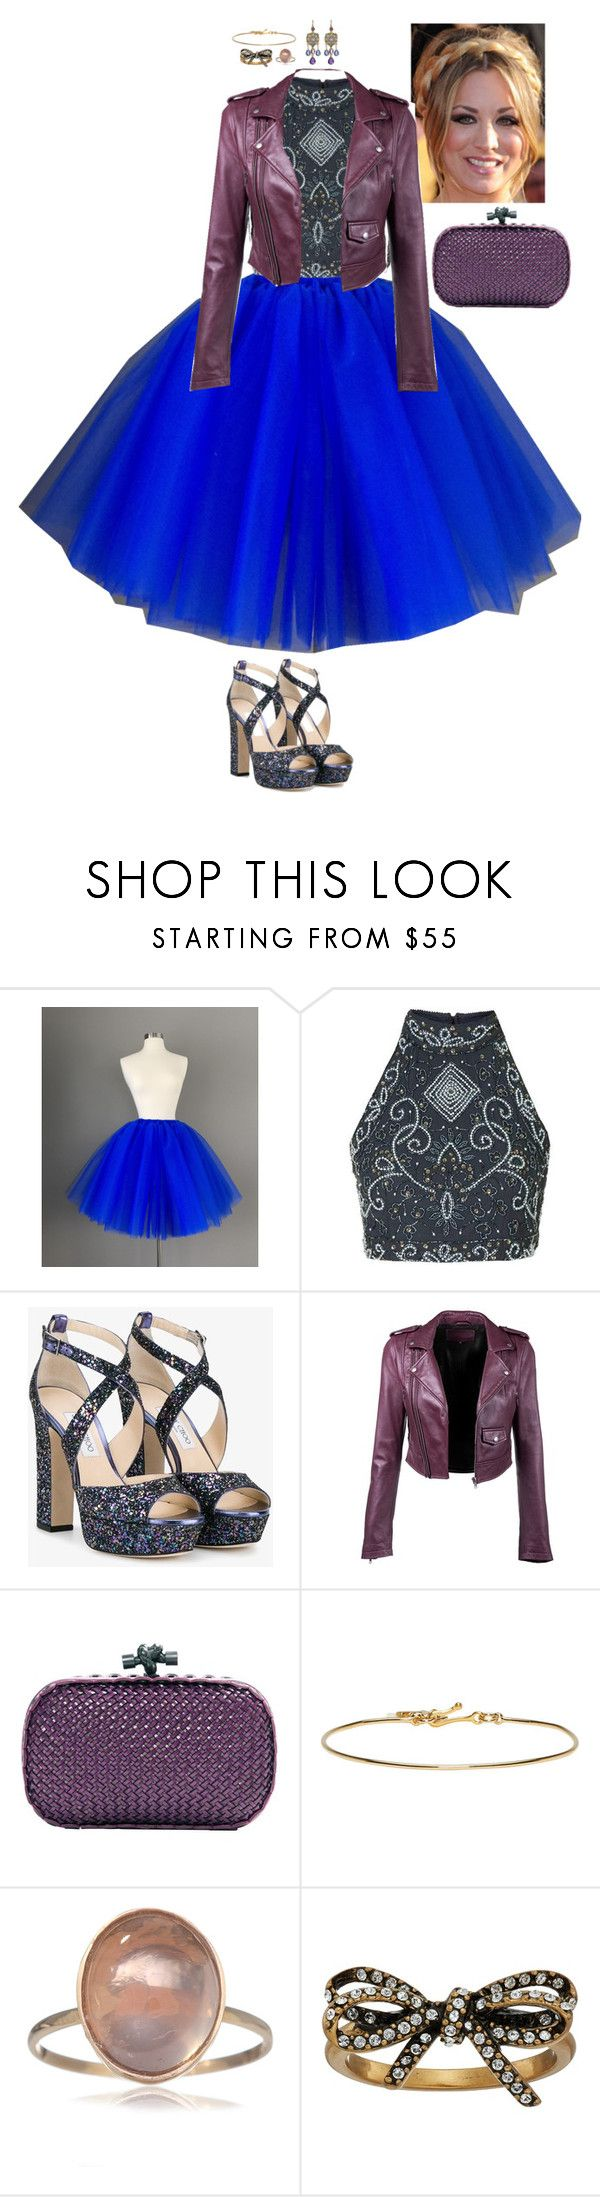 """""""Warmfront - Cocktails by Cody"""" by stinze on Polyvore featuring Jimmy Choo, Bottega Veneta, Isabel Marant, Marc Jacobs and ABS by Allen Schwartz"""